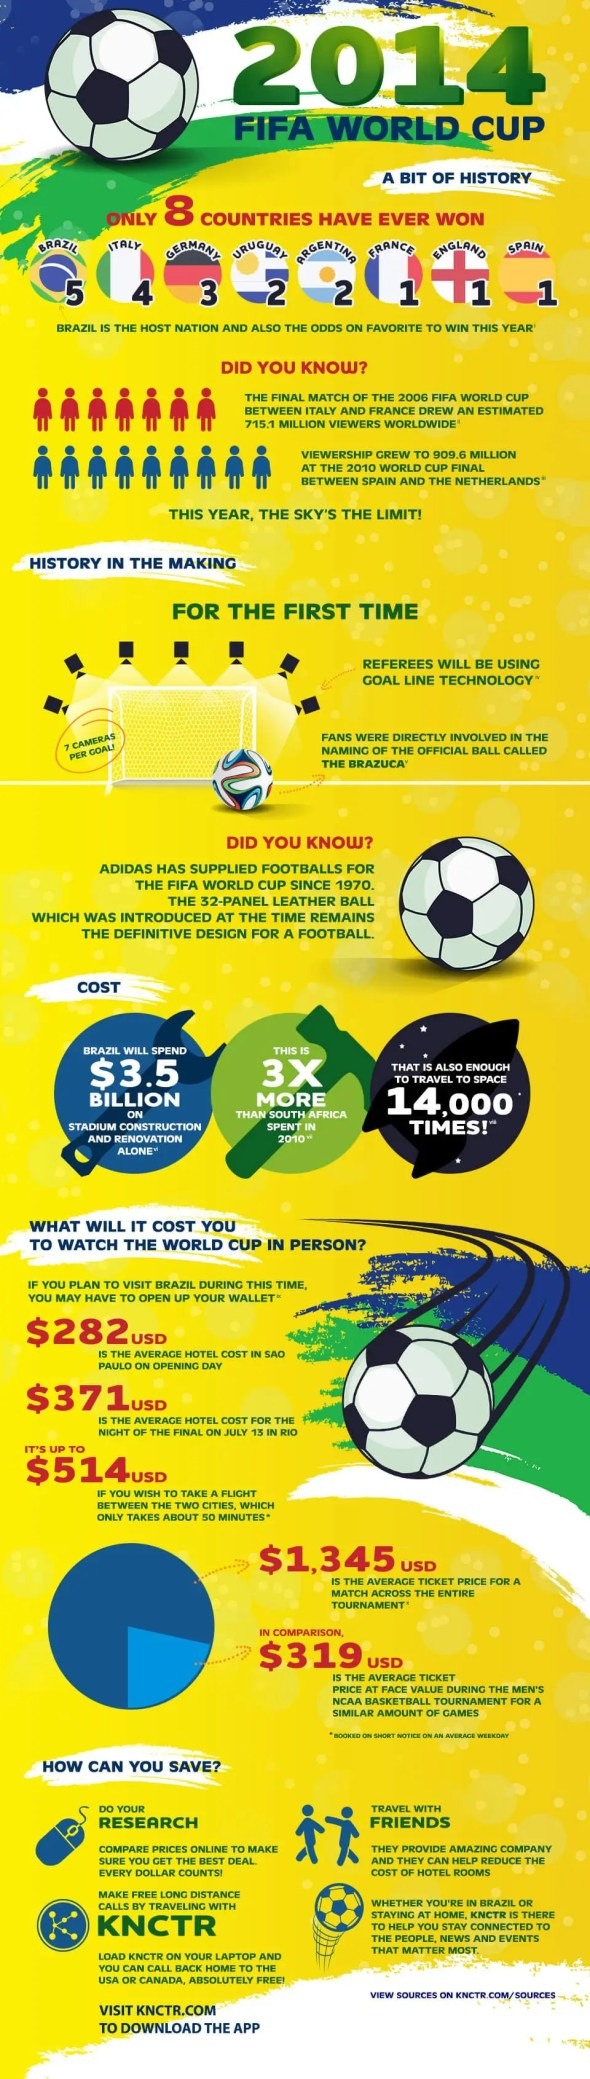 Infographic: 2014 FIFA World Cup